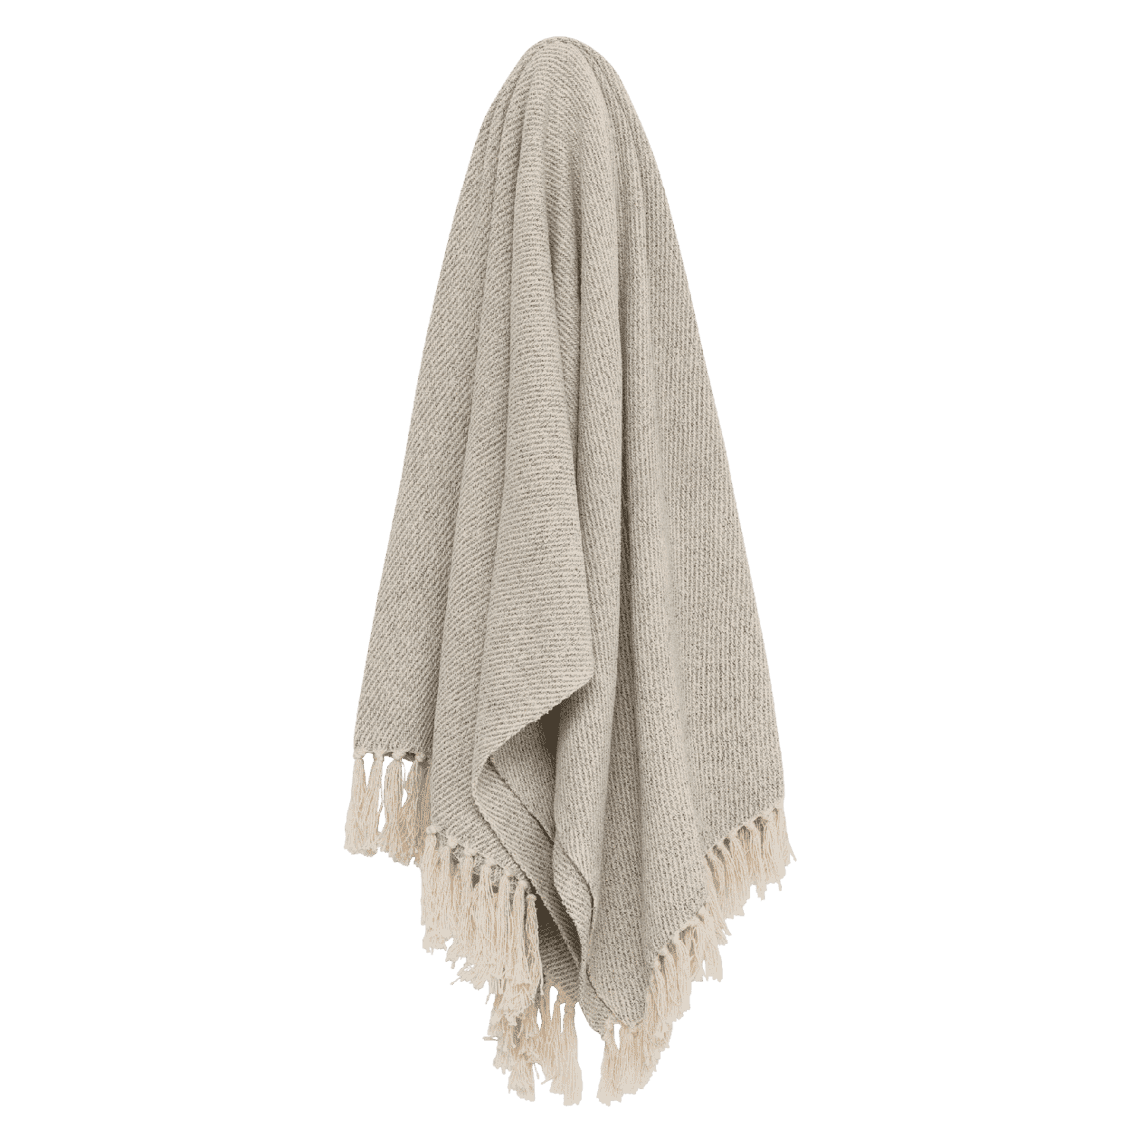 39137 Popular Category - Deep etches_Throws.png